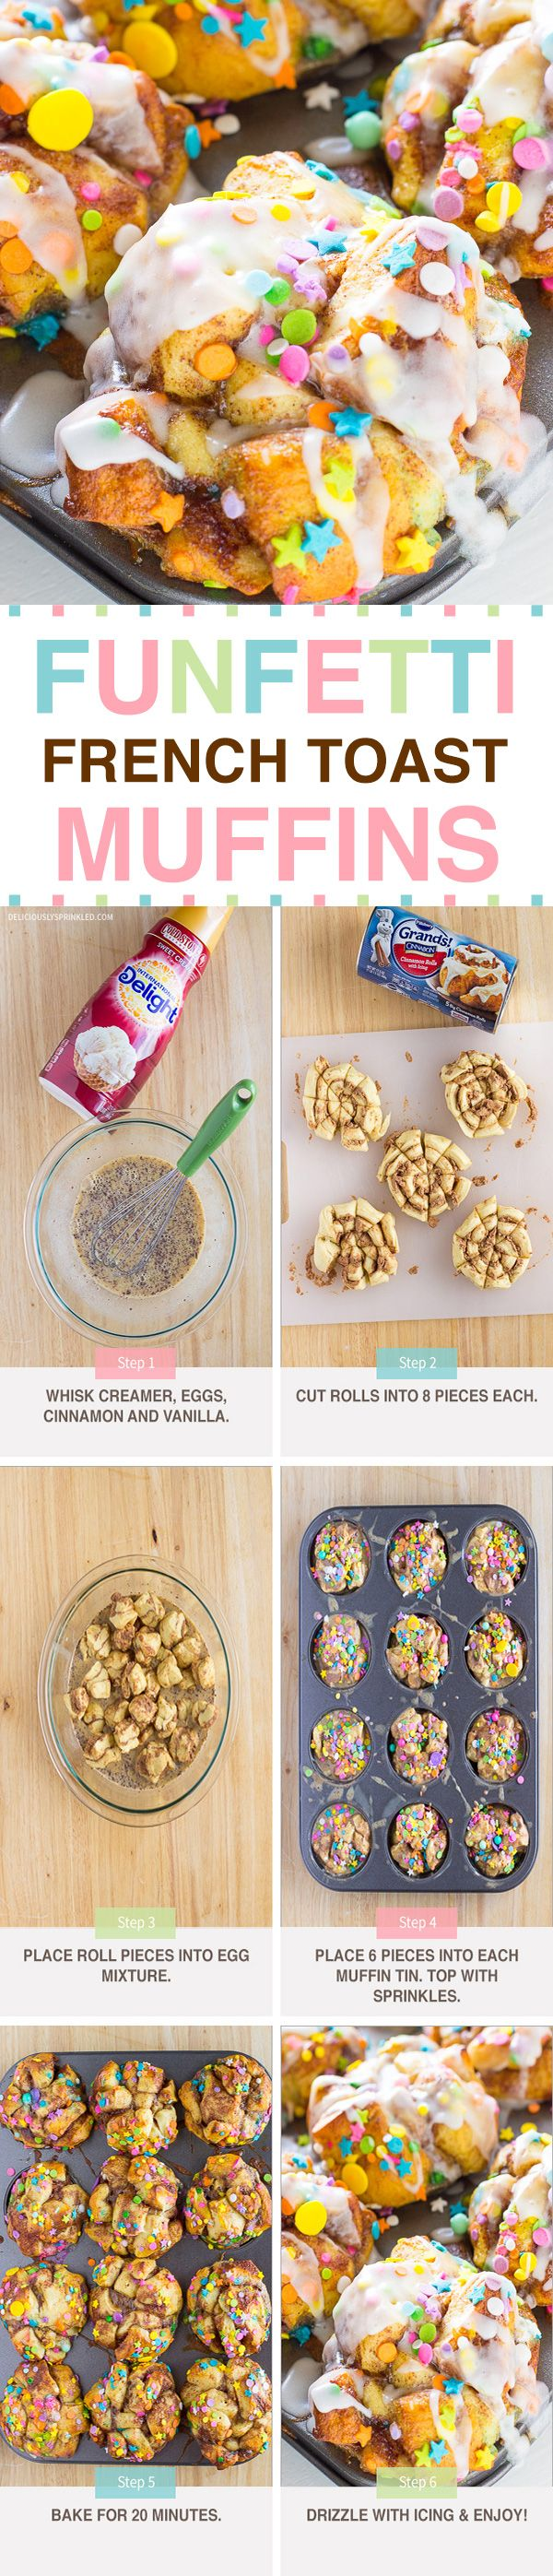 EASY to make Funfetti French Toast Muffins!!